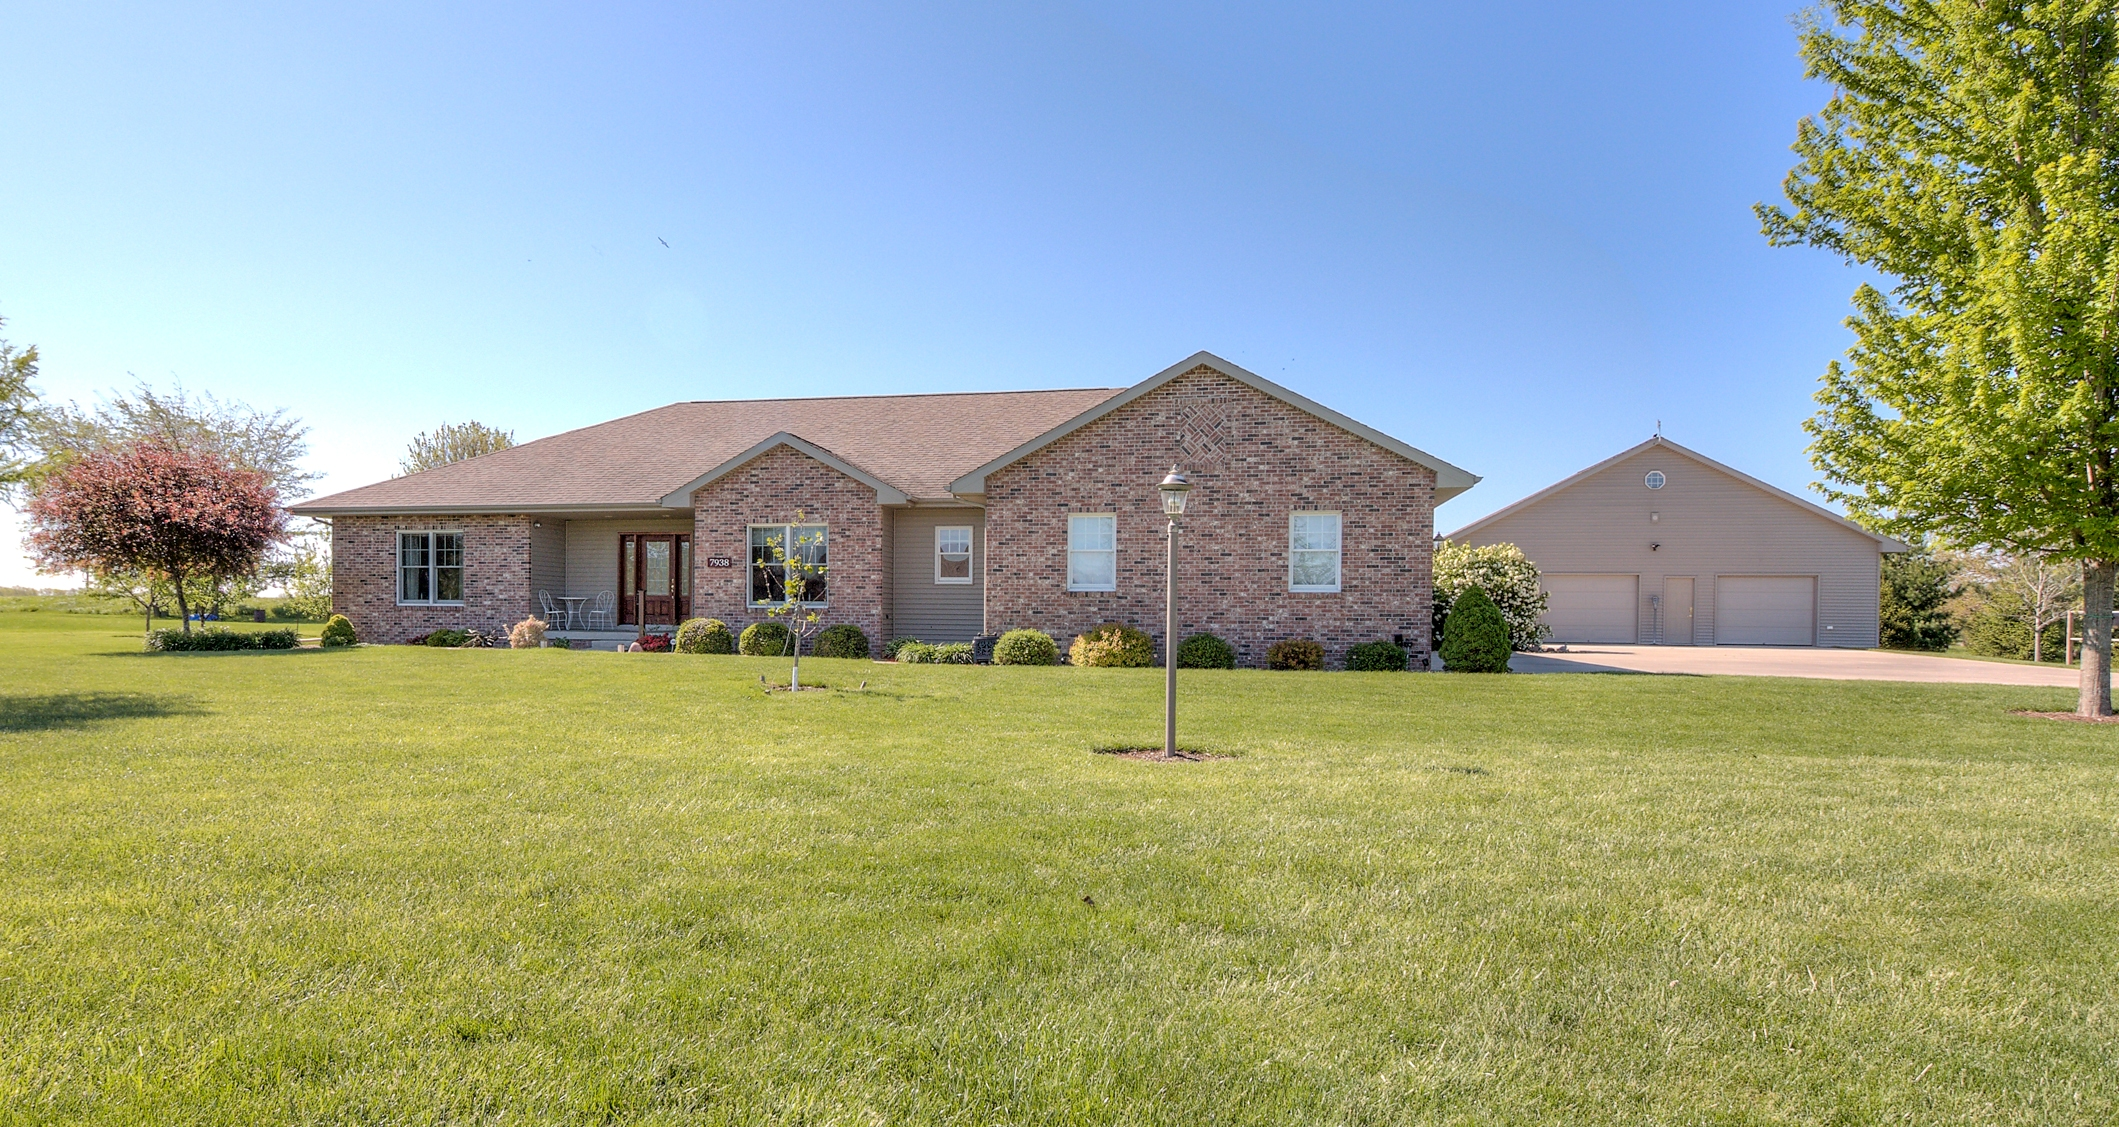 7938 Heron's Glen Ct, Wapella – $375,000